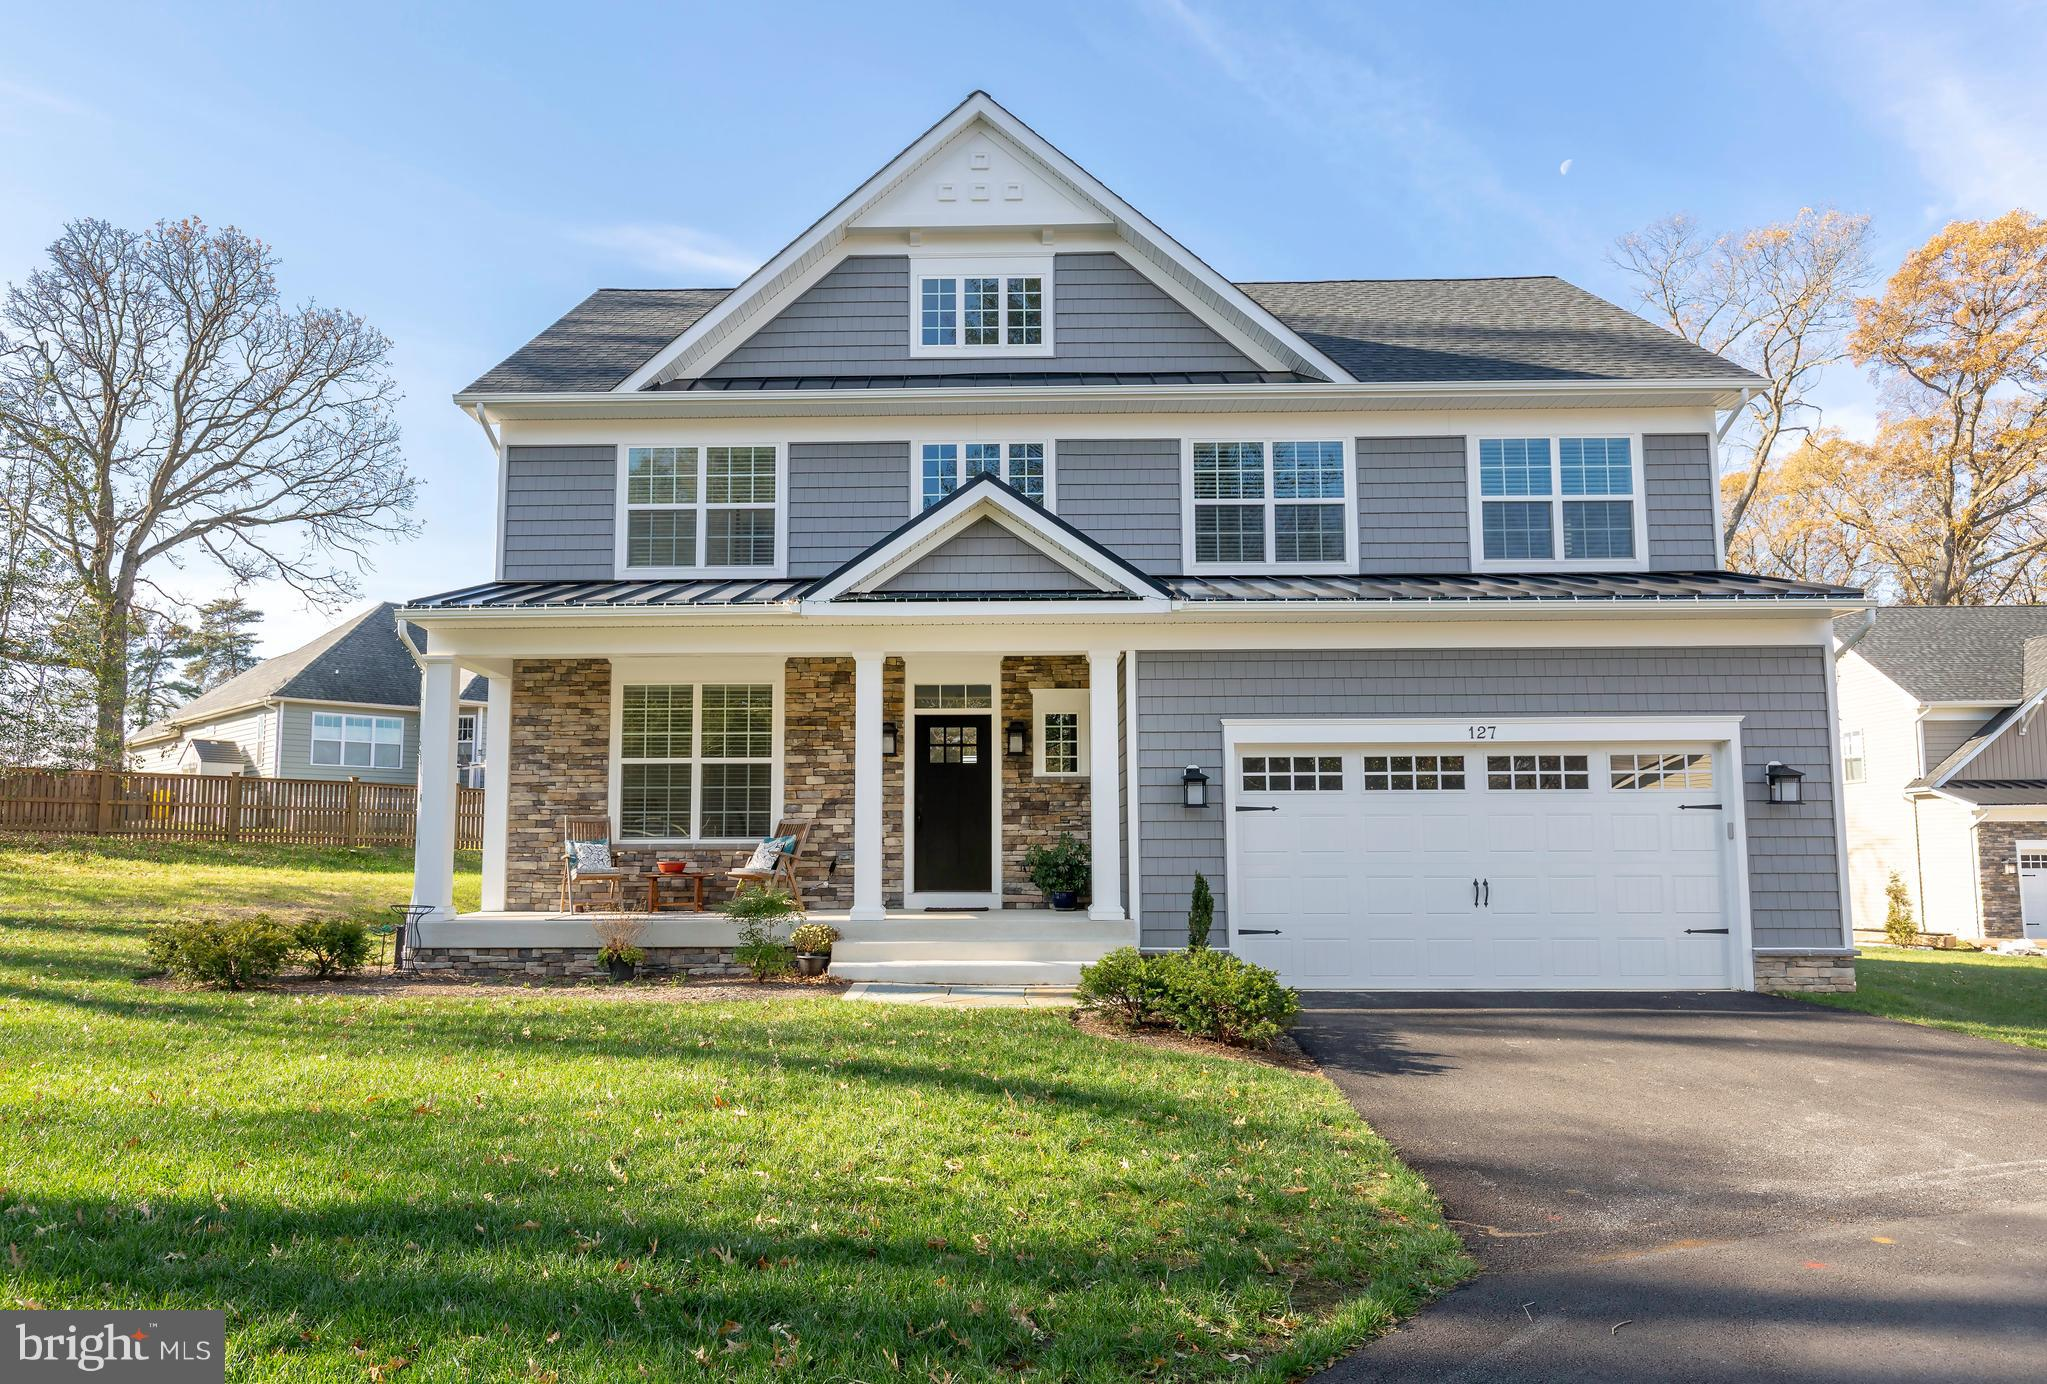 1603 MISTY MANOR WAY, MILLERSVILLE, MD 21108